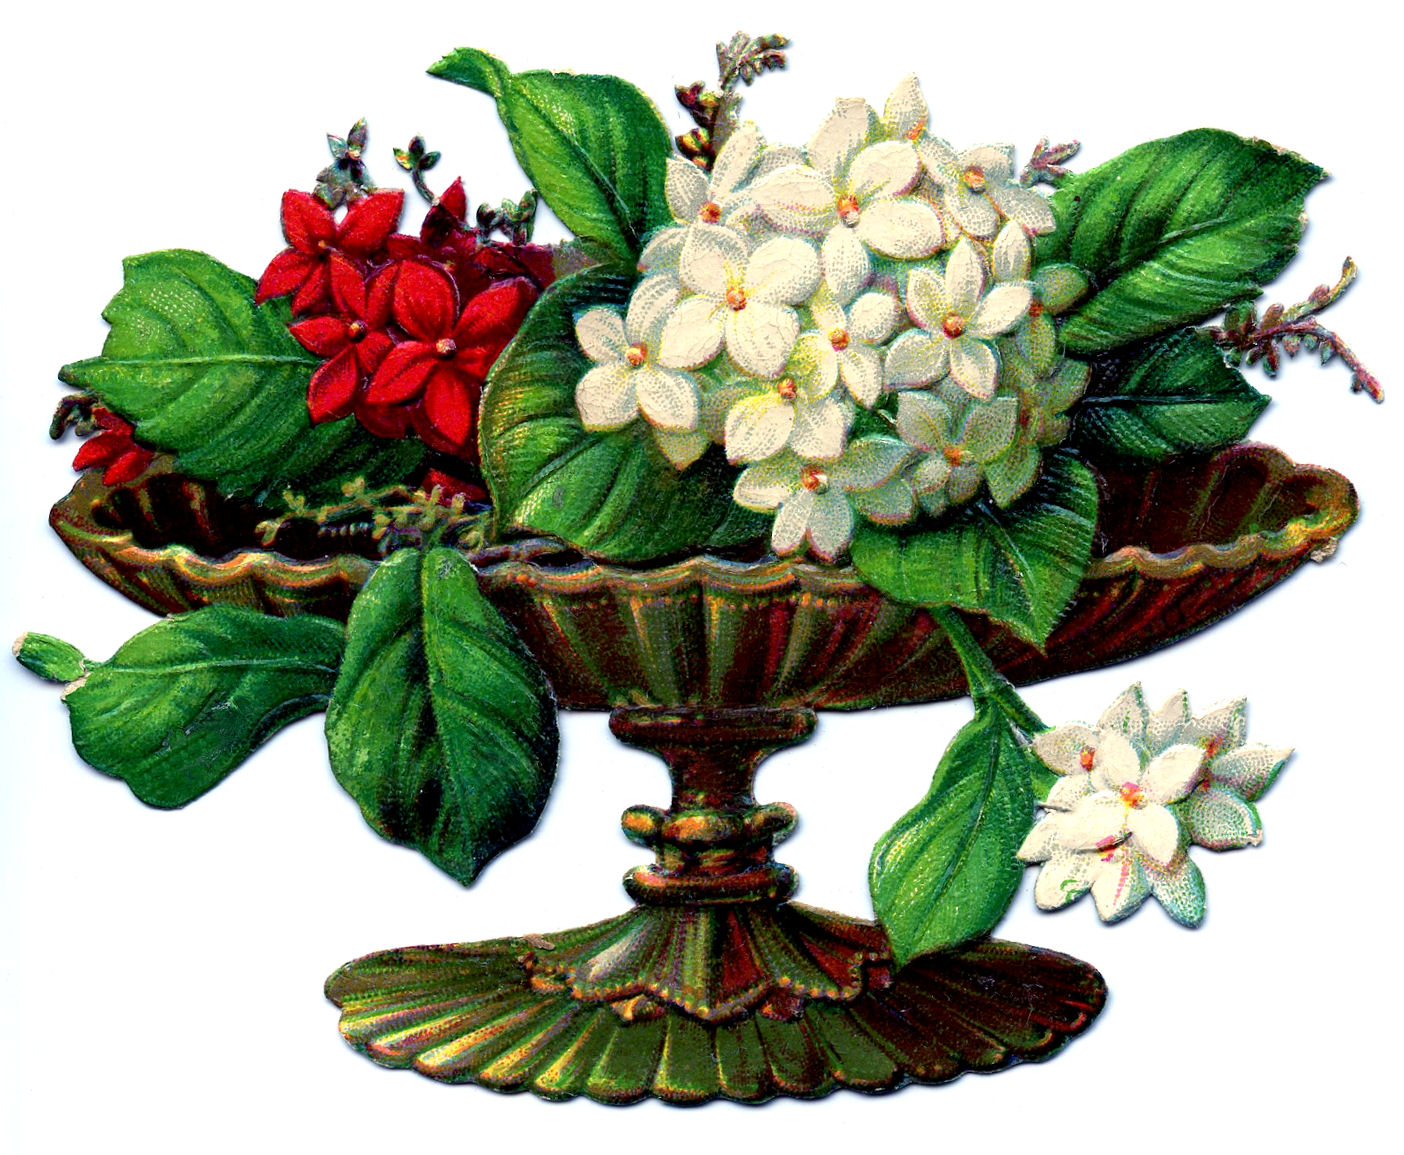 Victorian Clip Art - Flowers in Urns - The Graphics Fairy